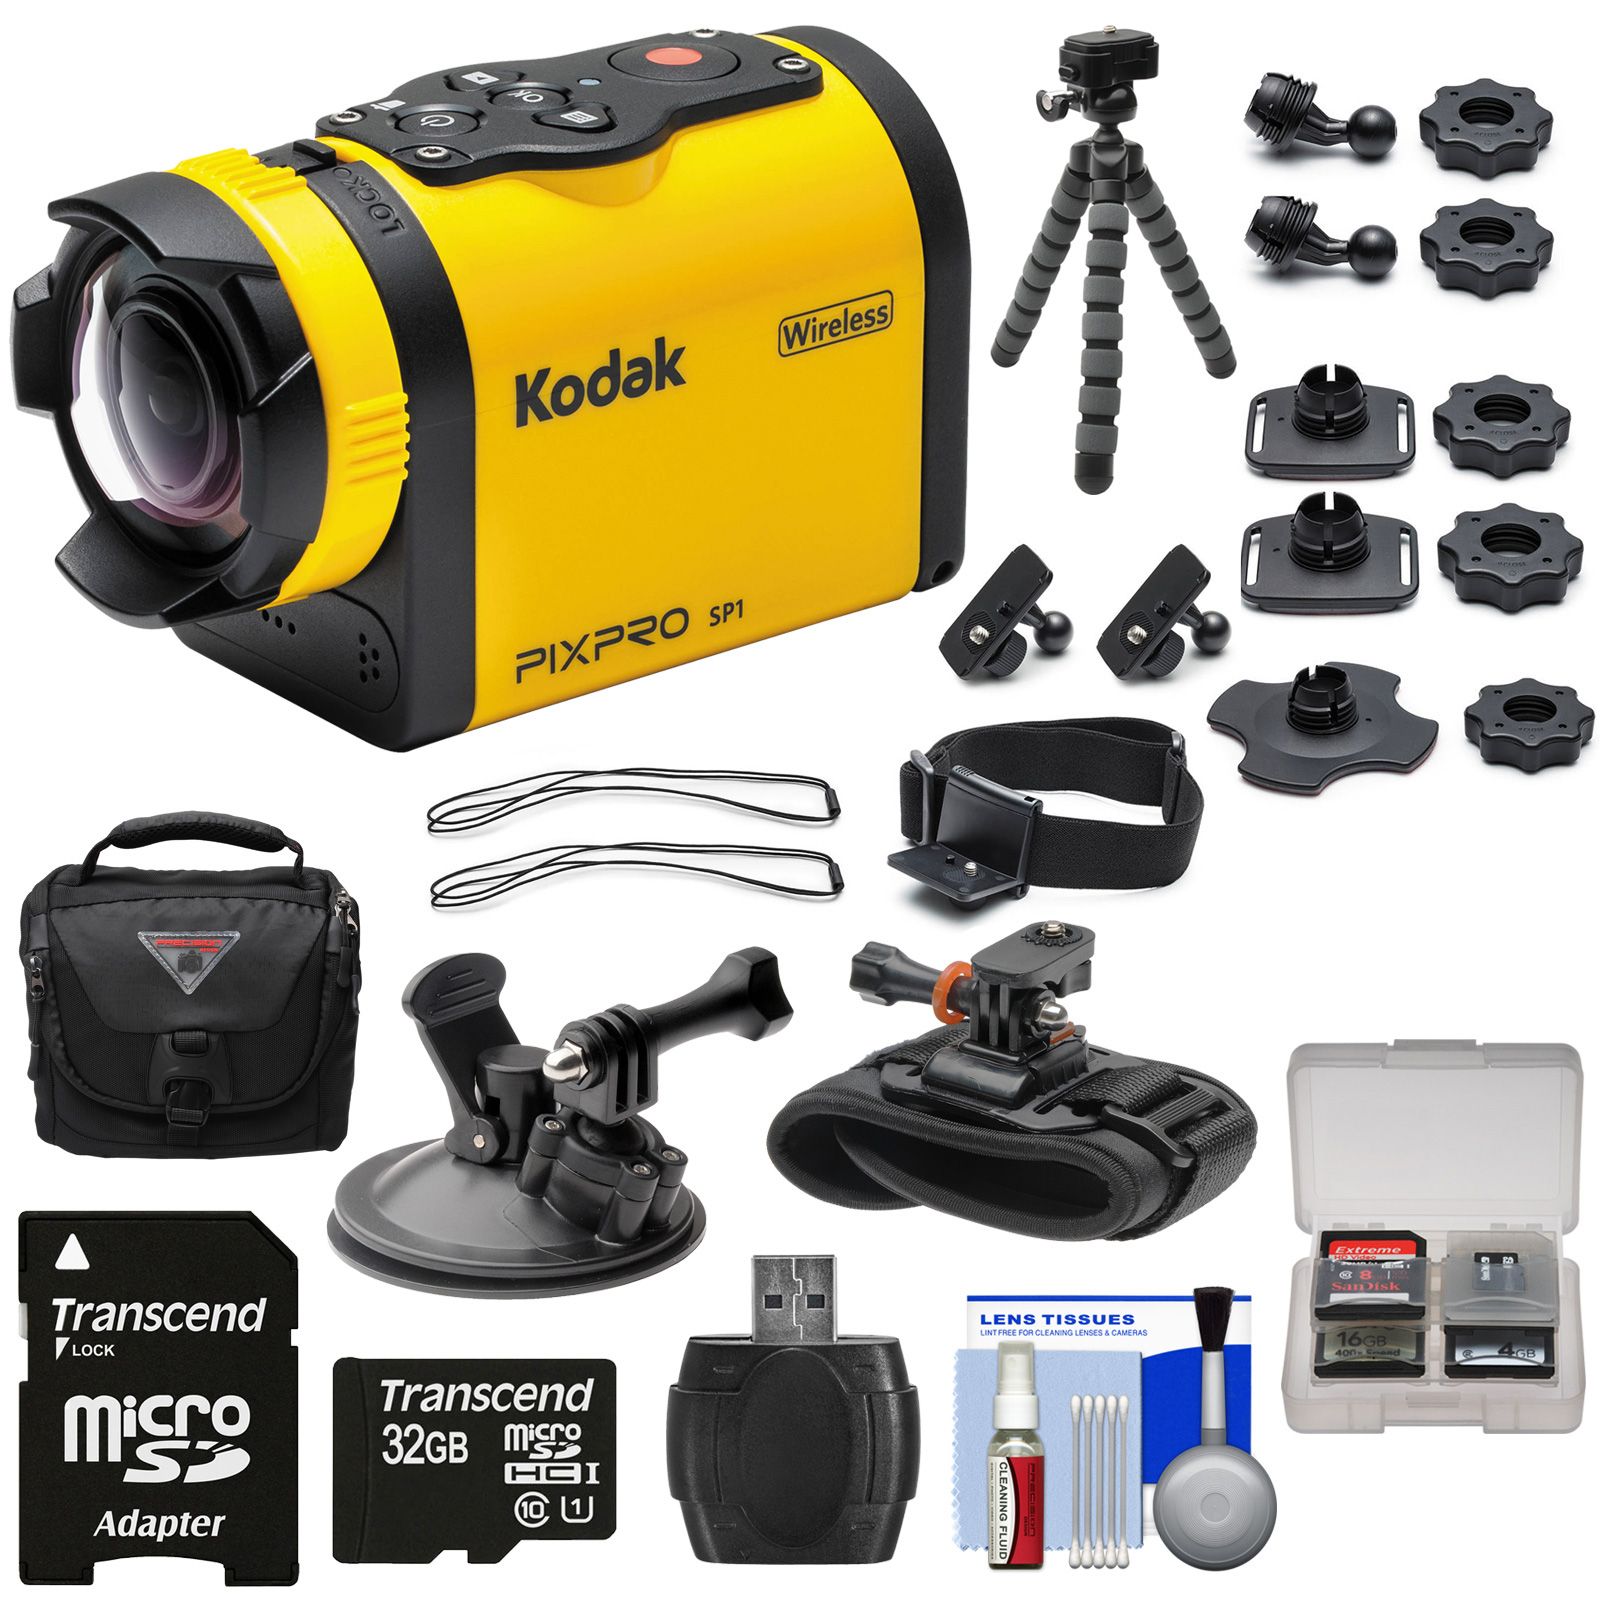 Kodak PixPro SP1 Video Action Camera Camcorder - Aqua Sport Pack with Suction Cup & Wrist Mounts + 32GB Card + Case + Tripod + Kit PixPro SP1